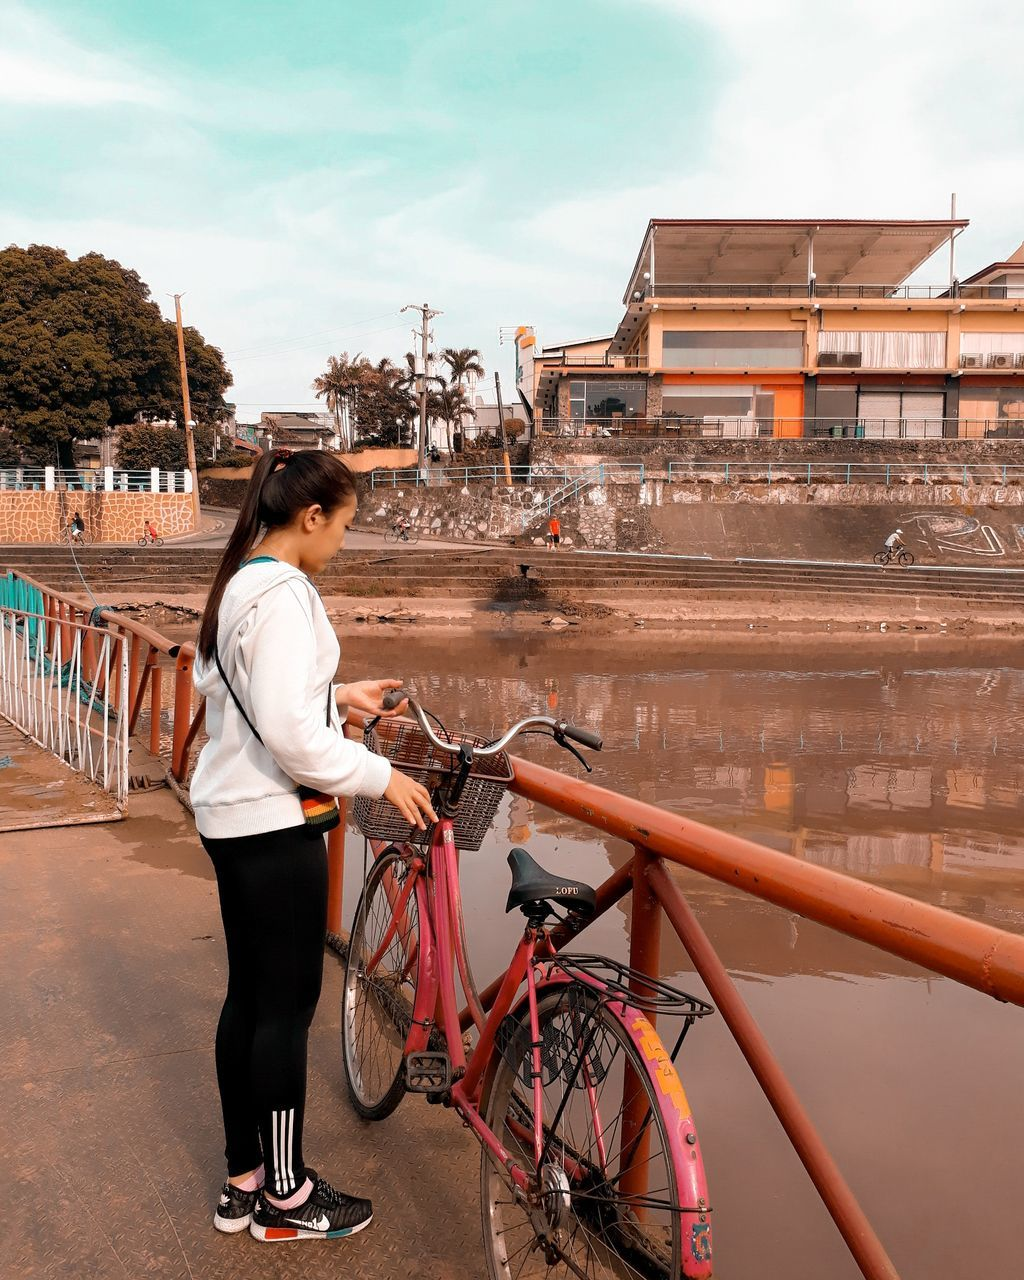 real people, full length, one person, bicycle, lifestyles, casual clothing, building exterior, young adult, young women, built structure, architecture, outdoors, side view, land vehicle, leisure activity, transportation, mode of transport, sky, day, bridge - man made structure, standing, city